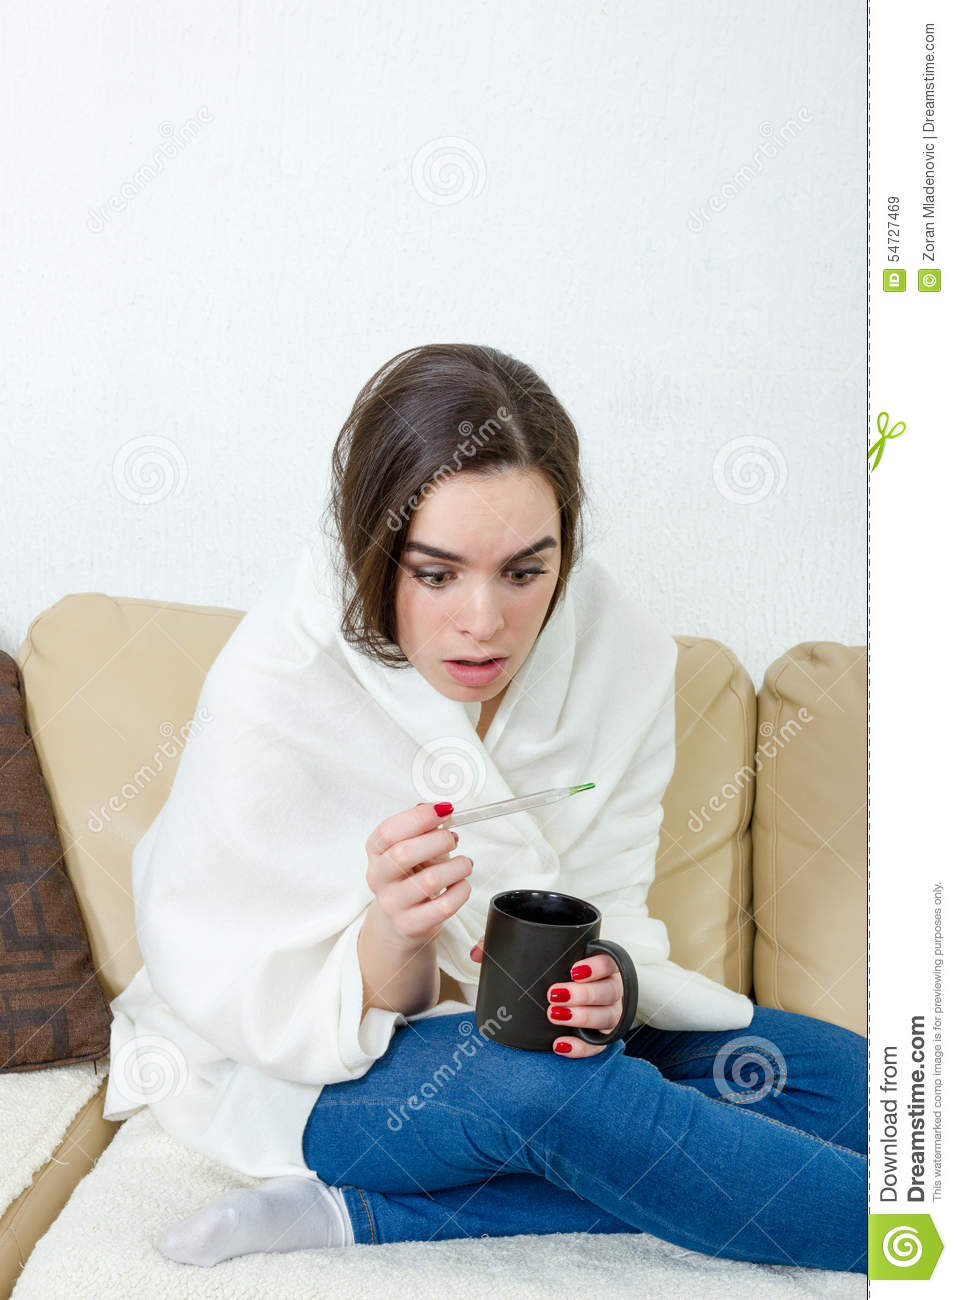 Female model caught cold covered with white blanket at home.